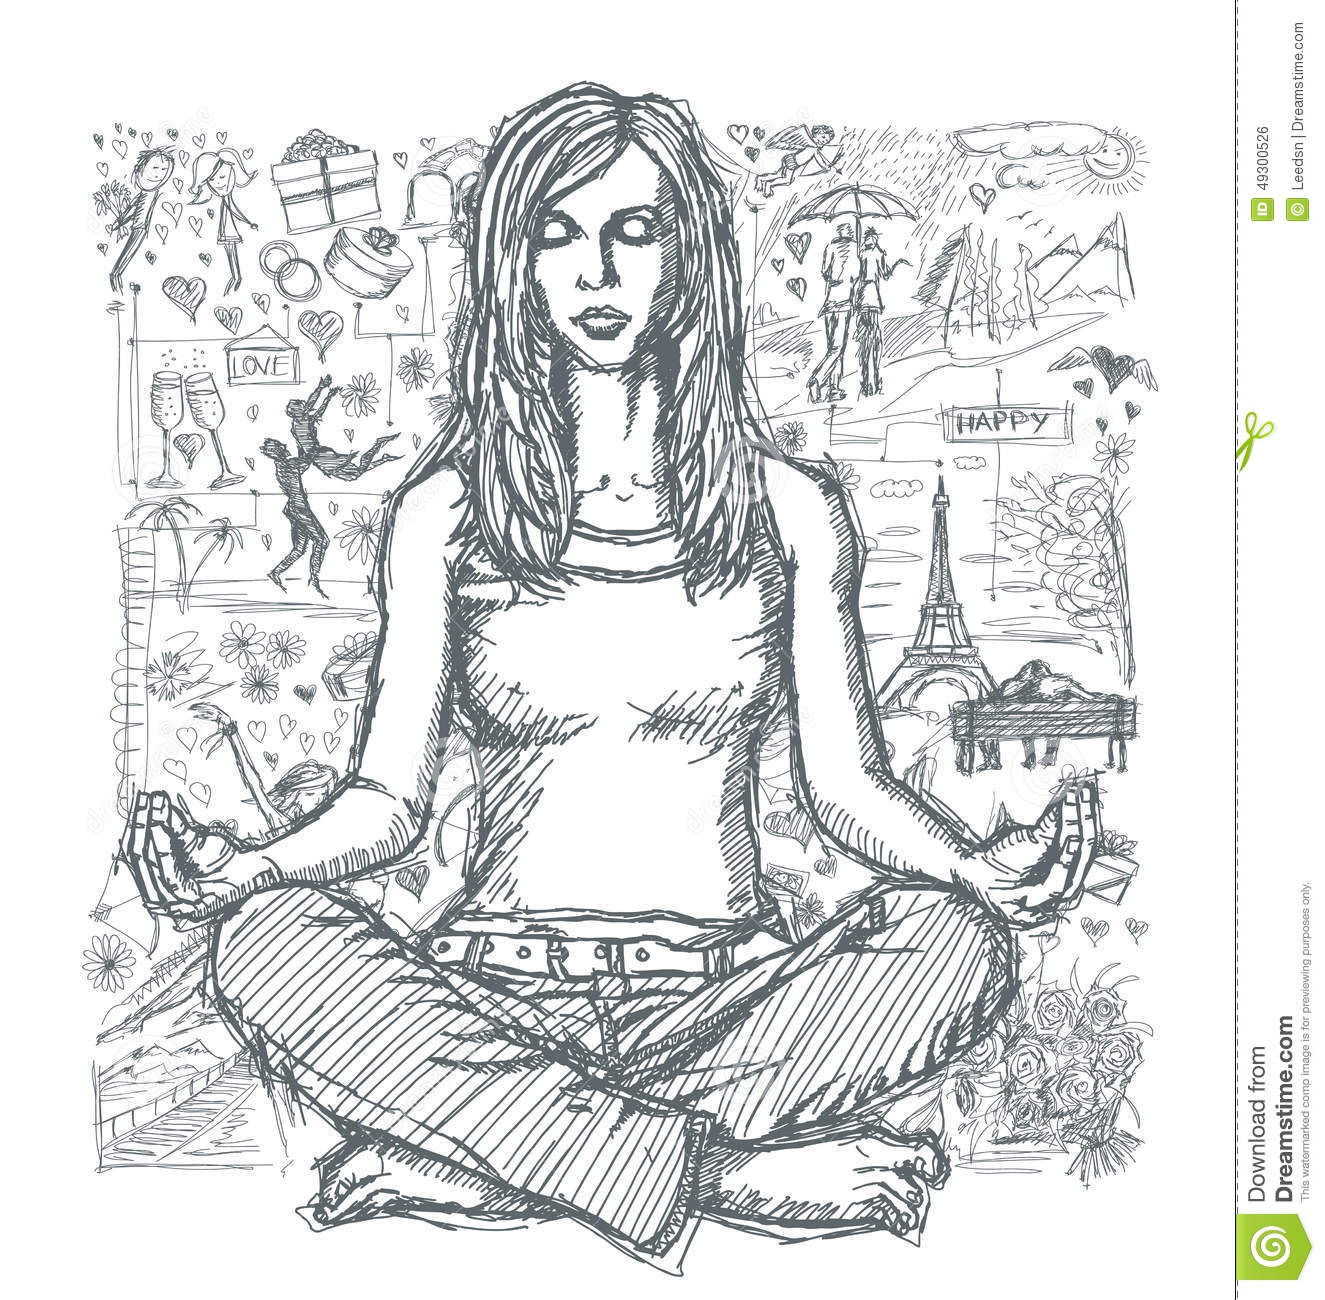 Sketch Woman Meditation In Lotus Pose Against Love Story Background 03